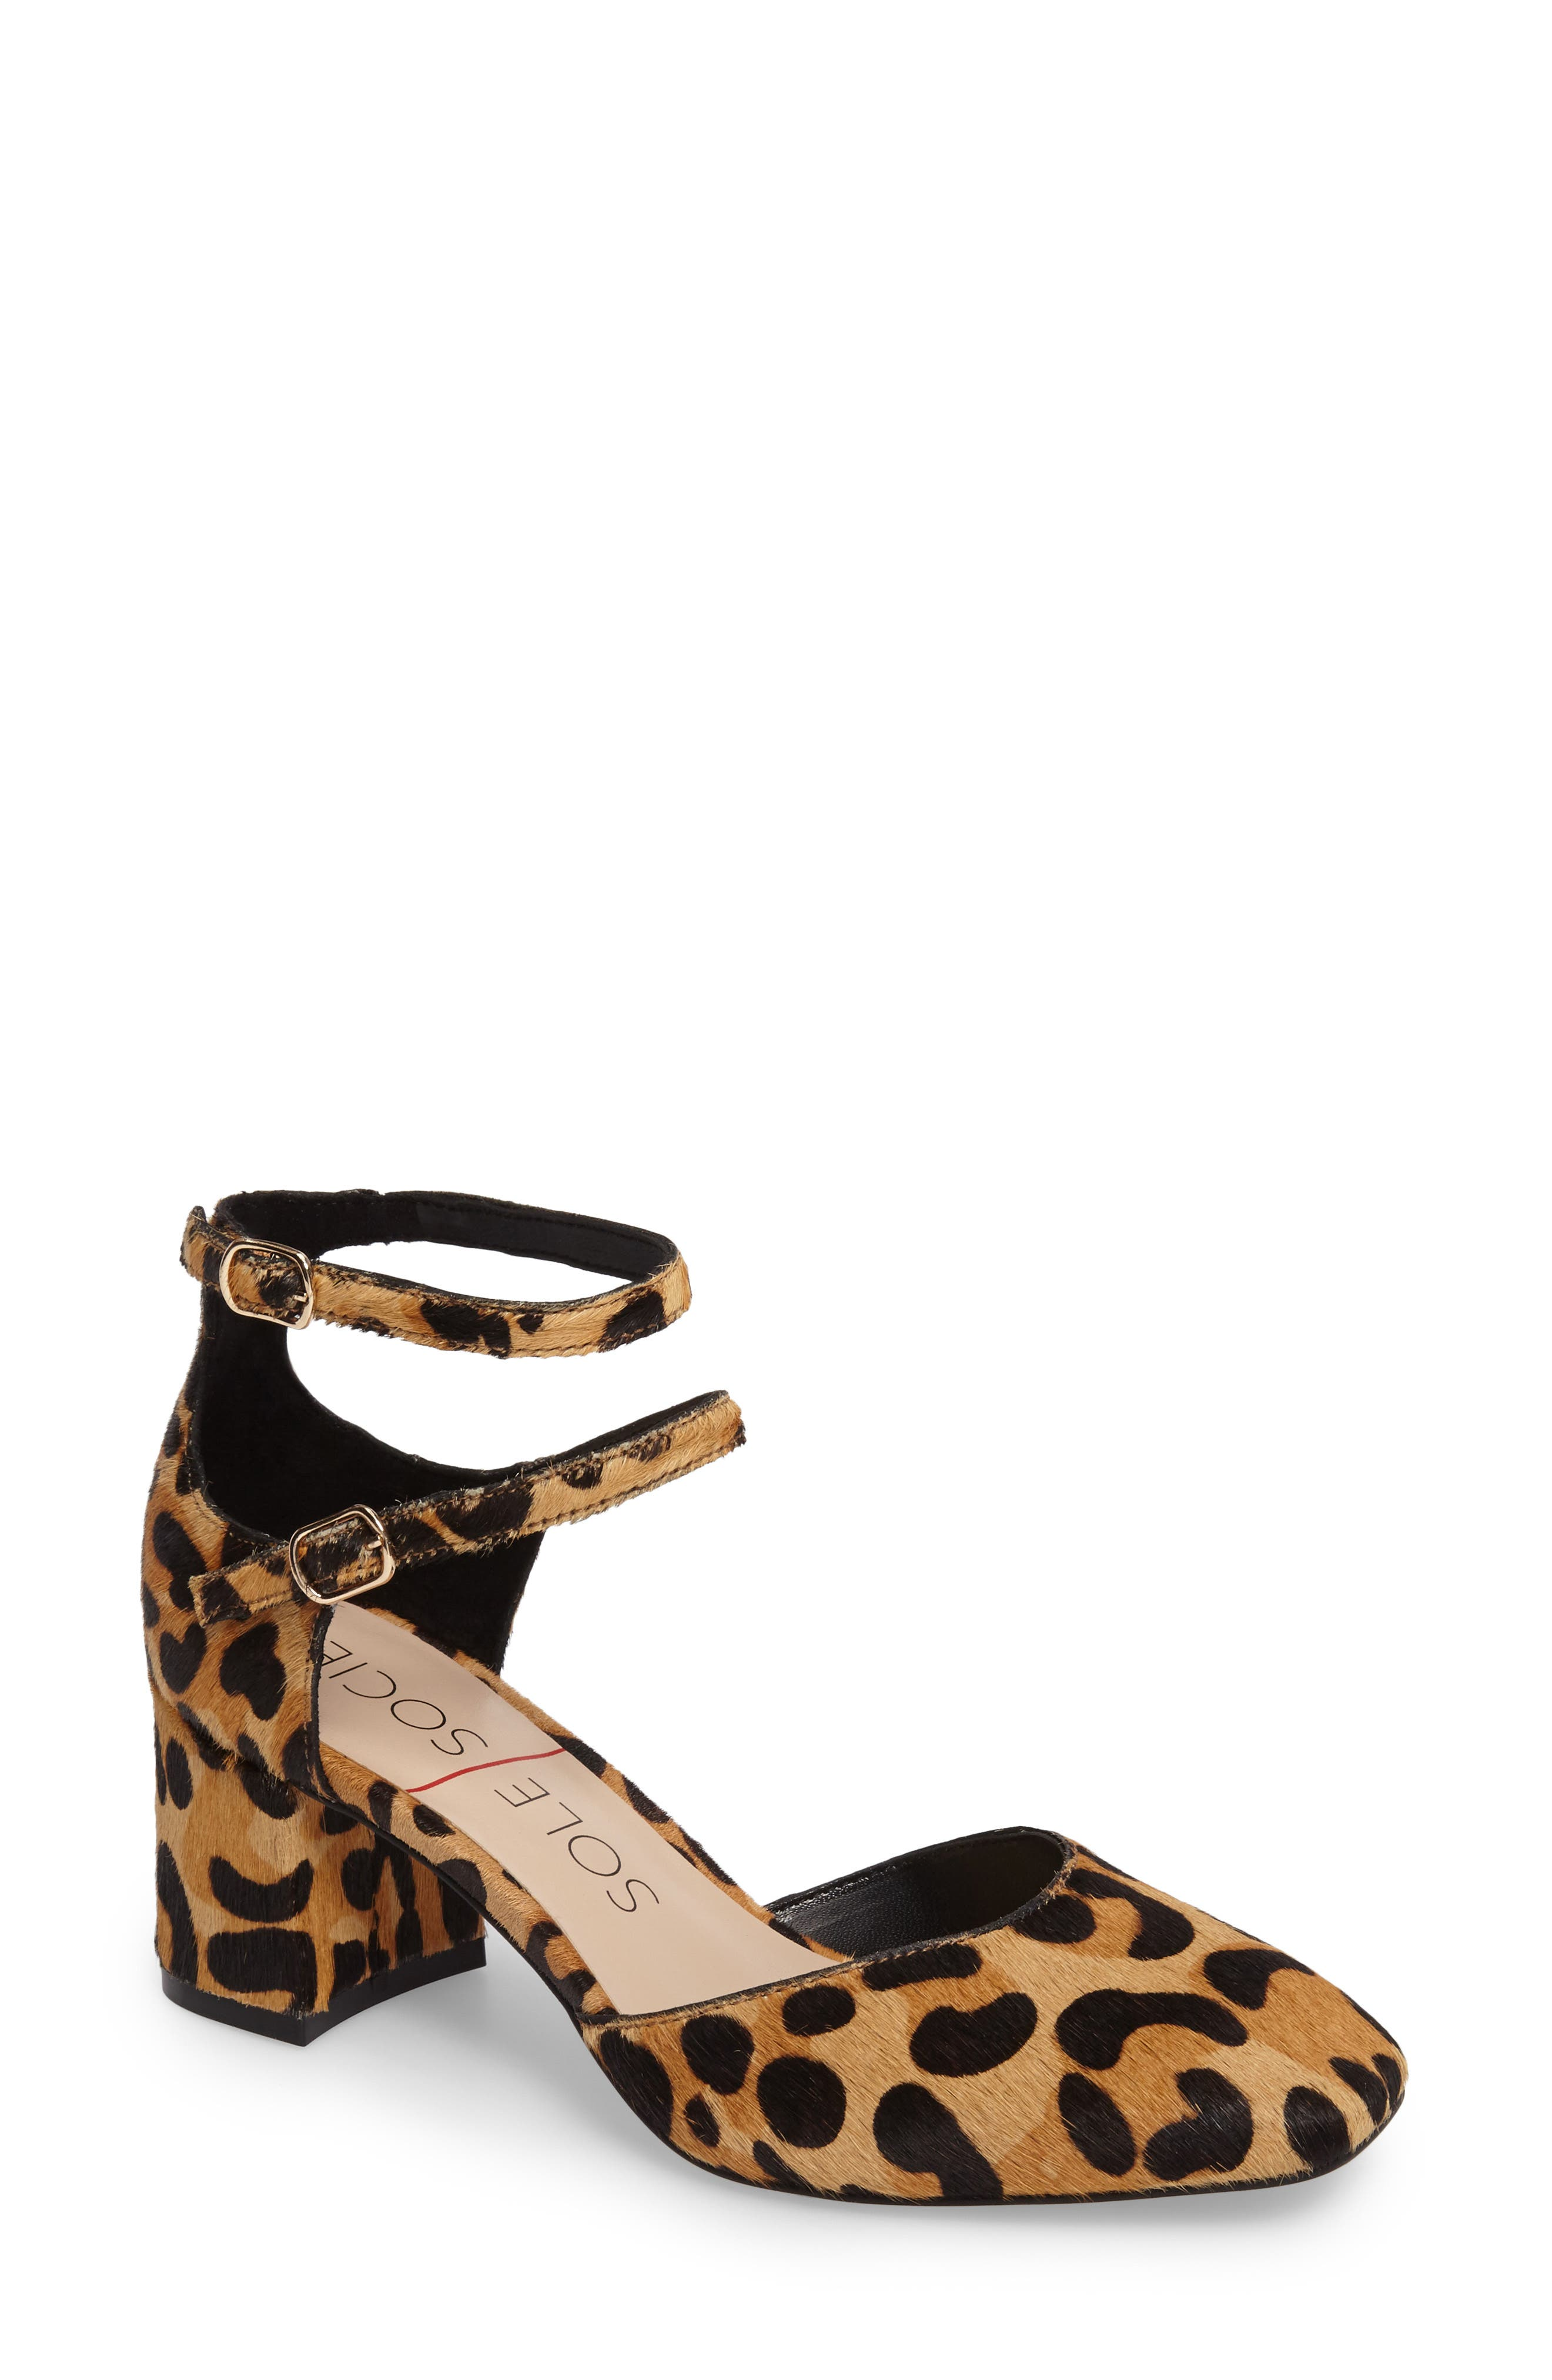 Alternate Image 1 Selected - Sole Society Selby Double Strap Pump (Women)